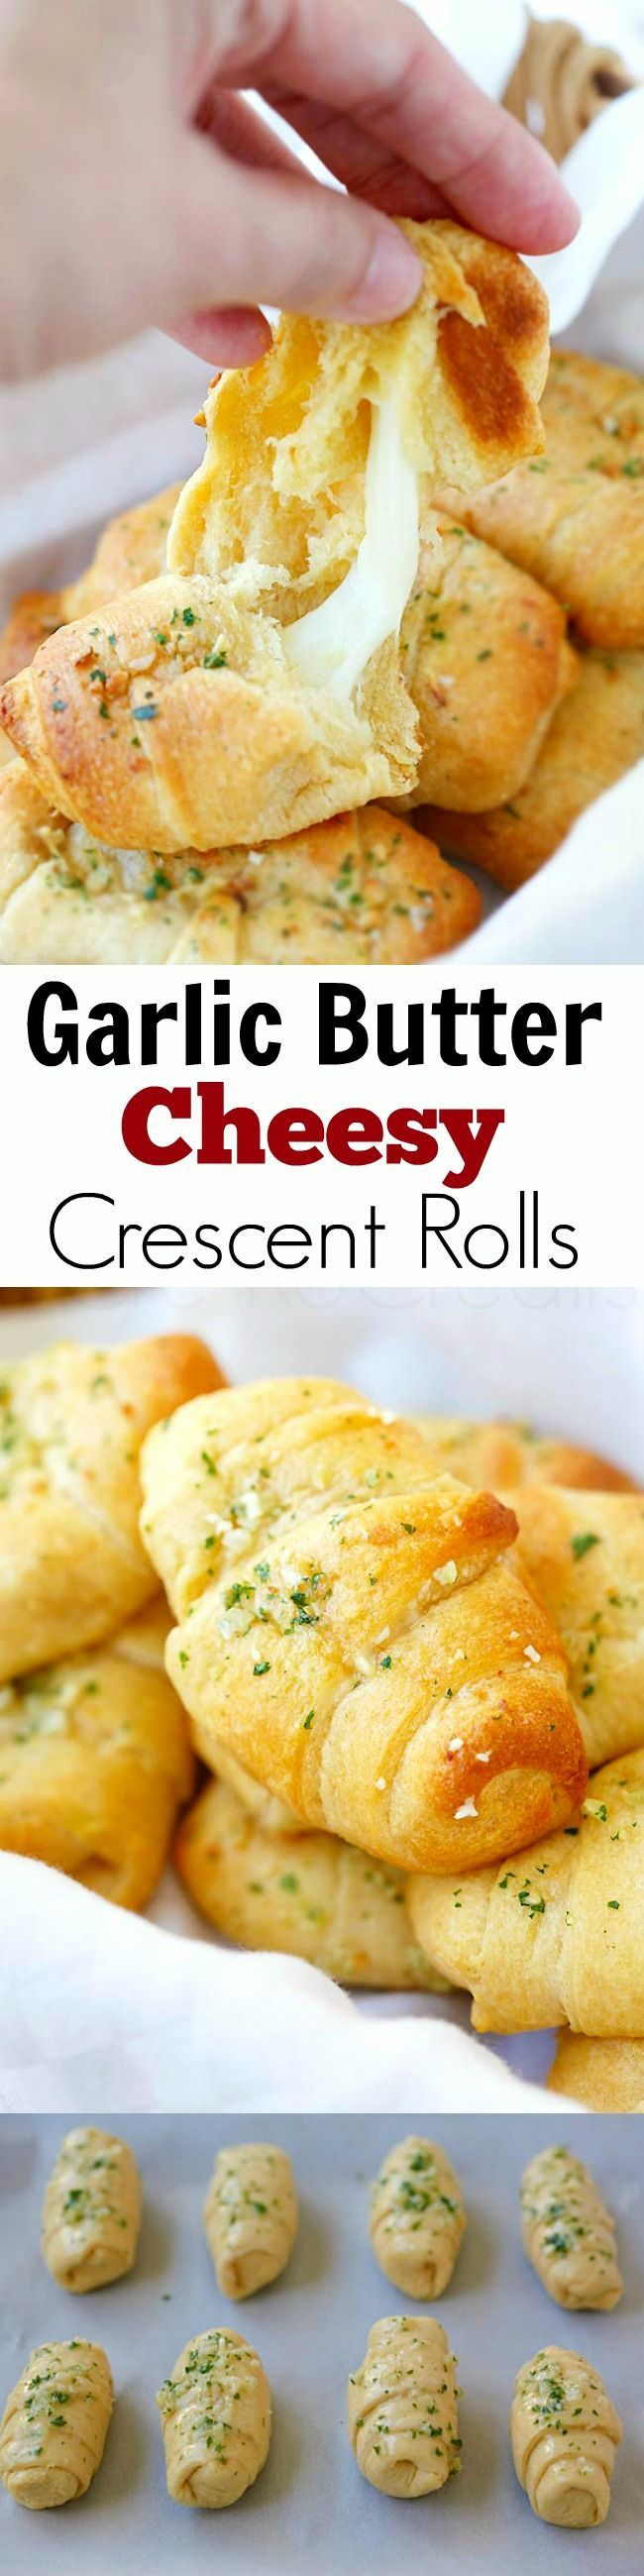 Garlic Butter Cheesy Crescent Rolls - amazing crescent rolls loaded with Mozzarella cheese and topped with garlic butter, takes 20 mins!!!